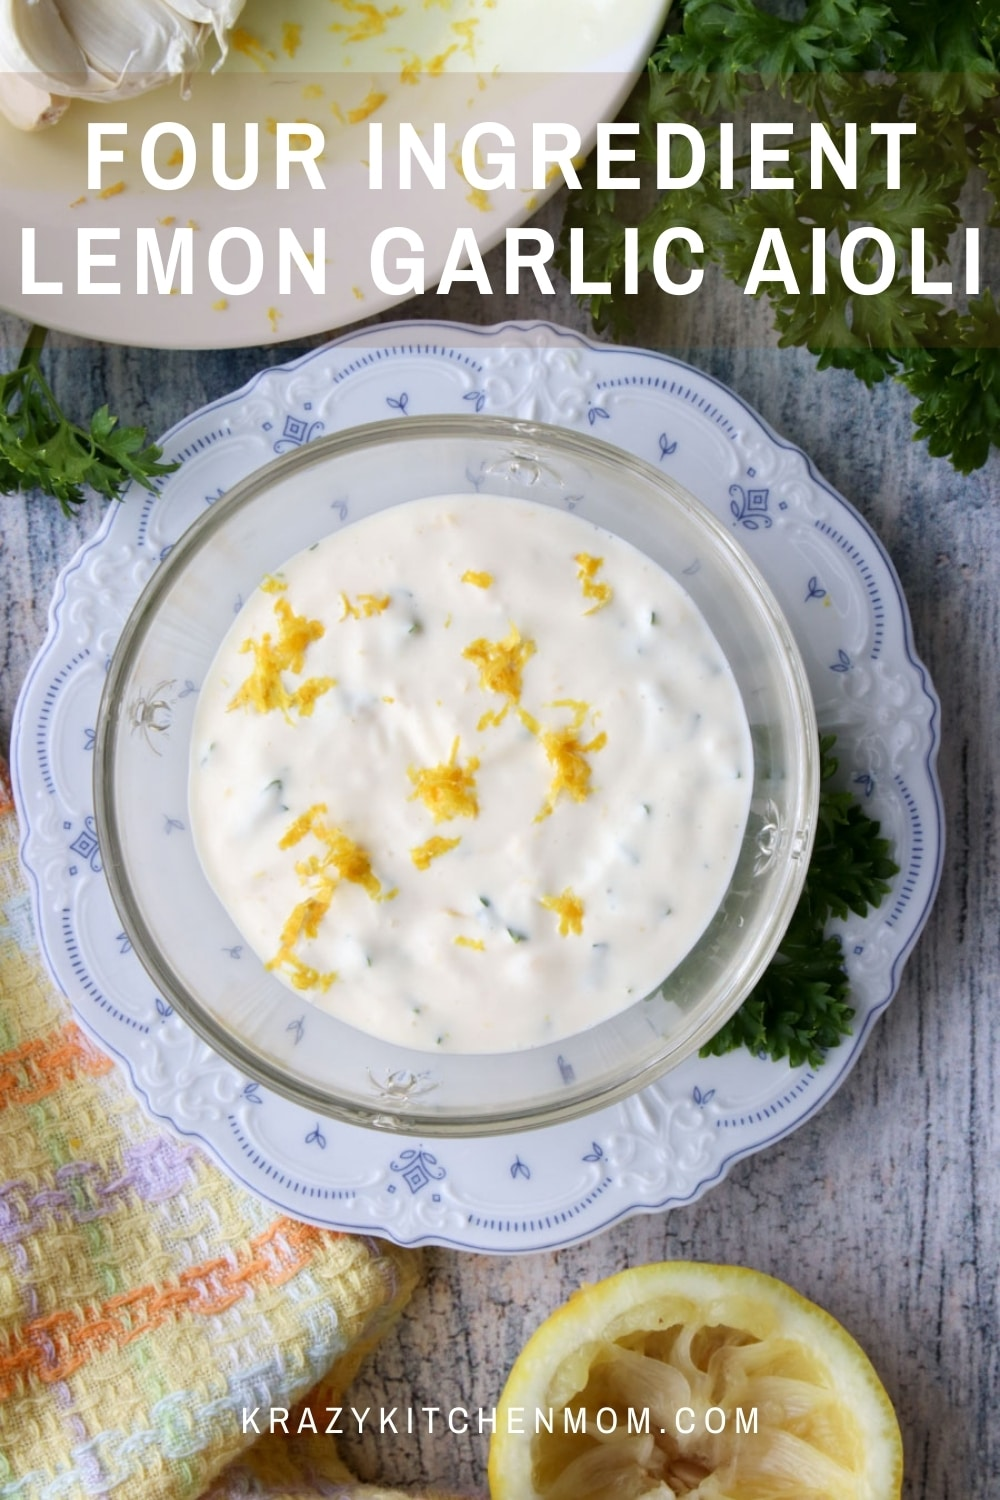 Make a creamy, zesty, bright, aioli using only four ingredients. Use it where ever you would use mayonnaise - as a spread or a dip. Creamy, zesty, bright deliciousness. via @krazykitchenmom